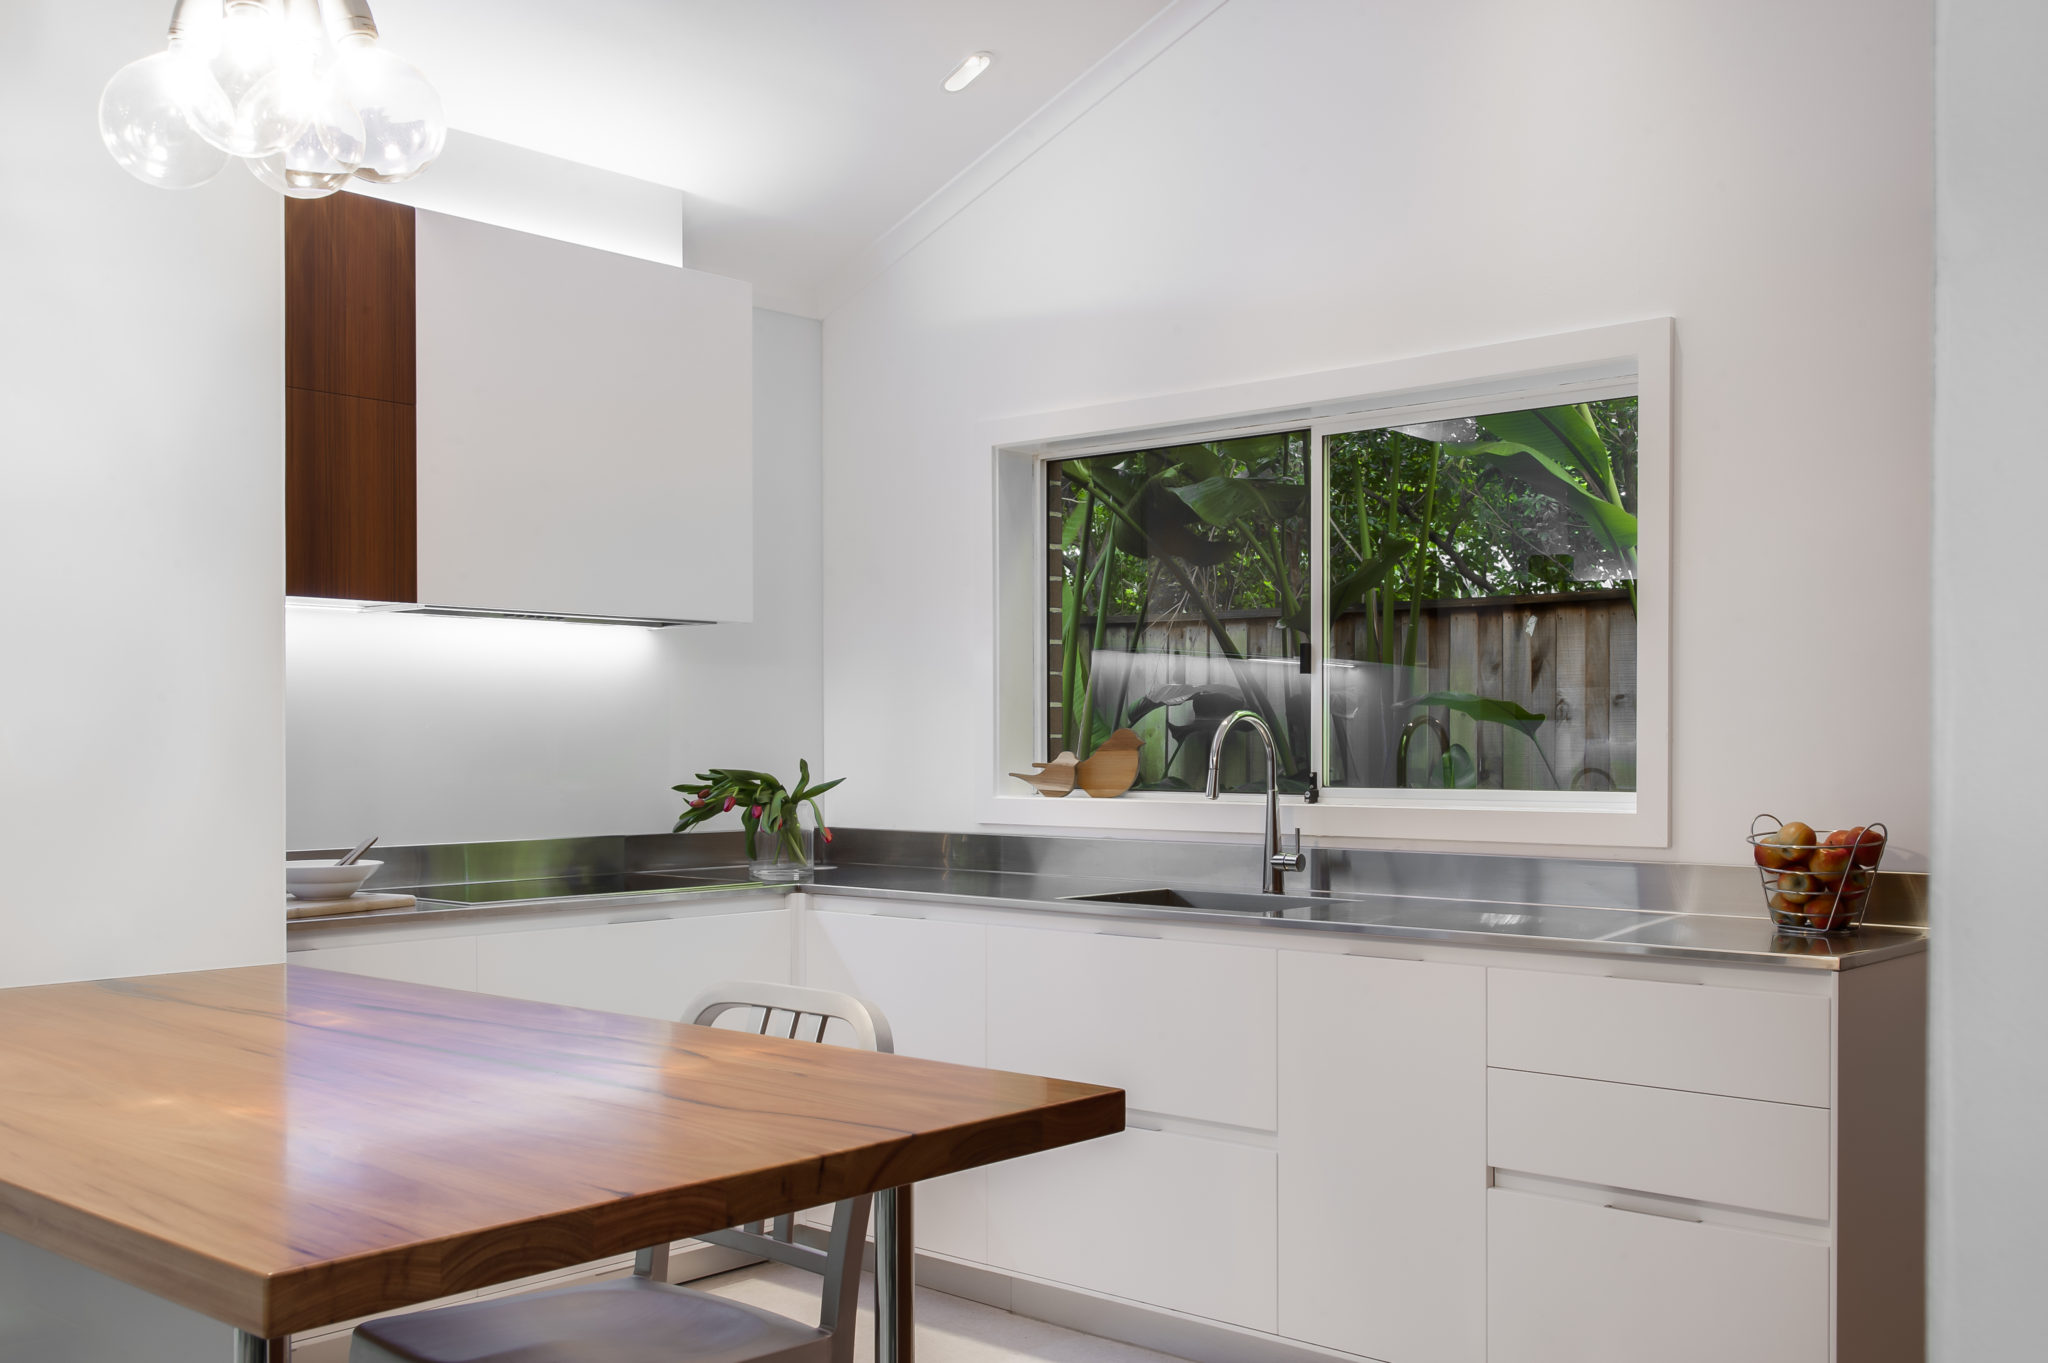 KBDI NSW Small Kitchen Design Year 2013 Darren